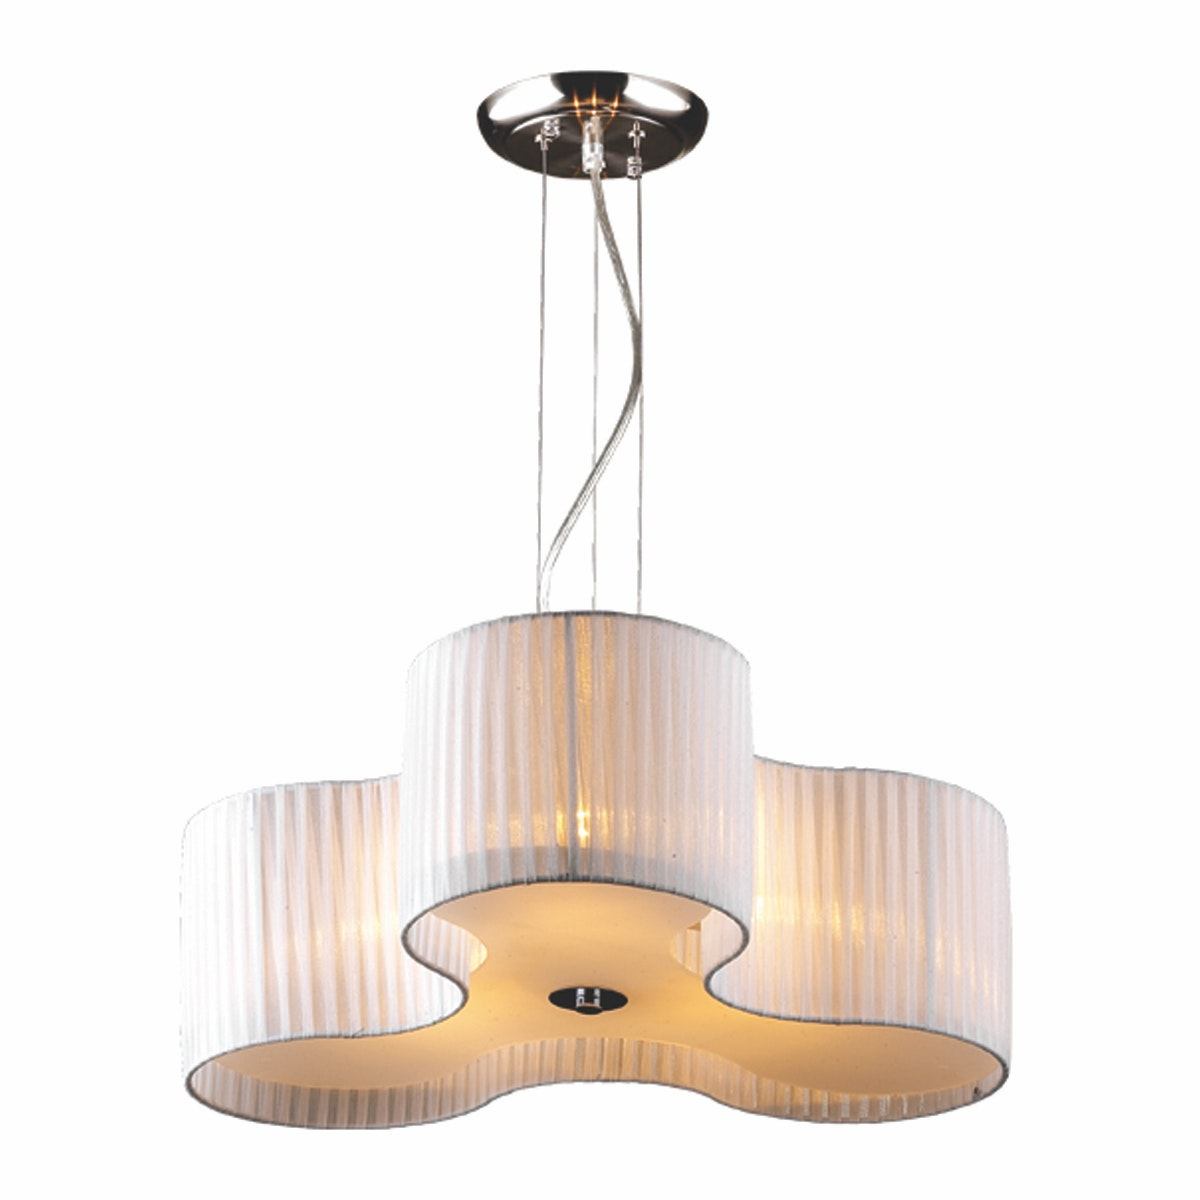 3+PROJECTS Lampu Gantung Pendant Lamp White Guaze 3+DL-SD1103-BE-VG